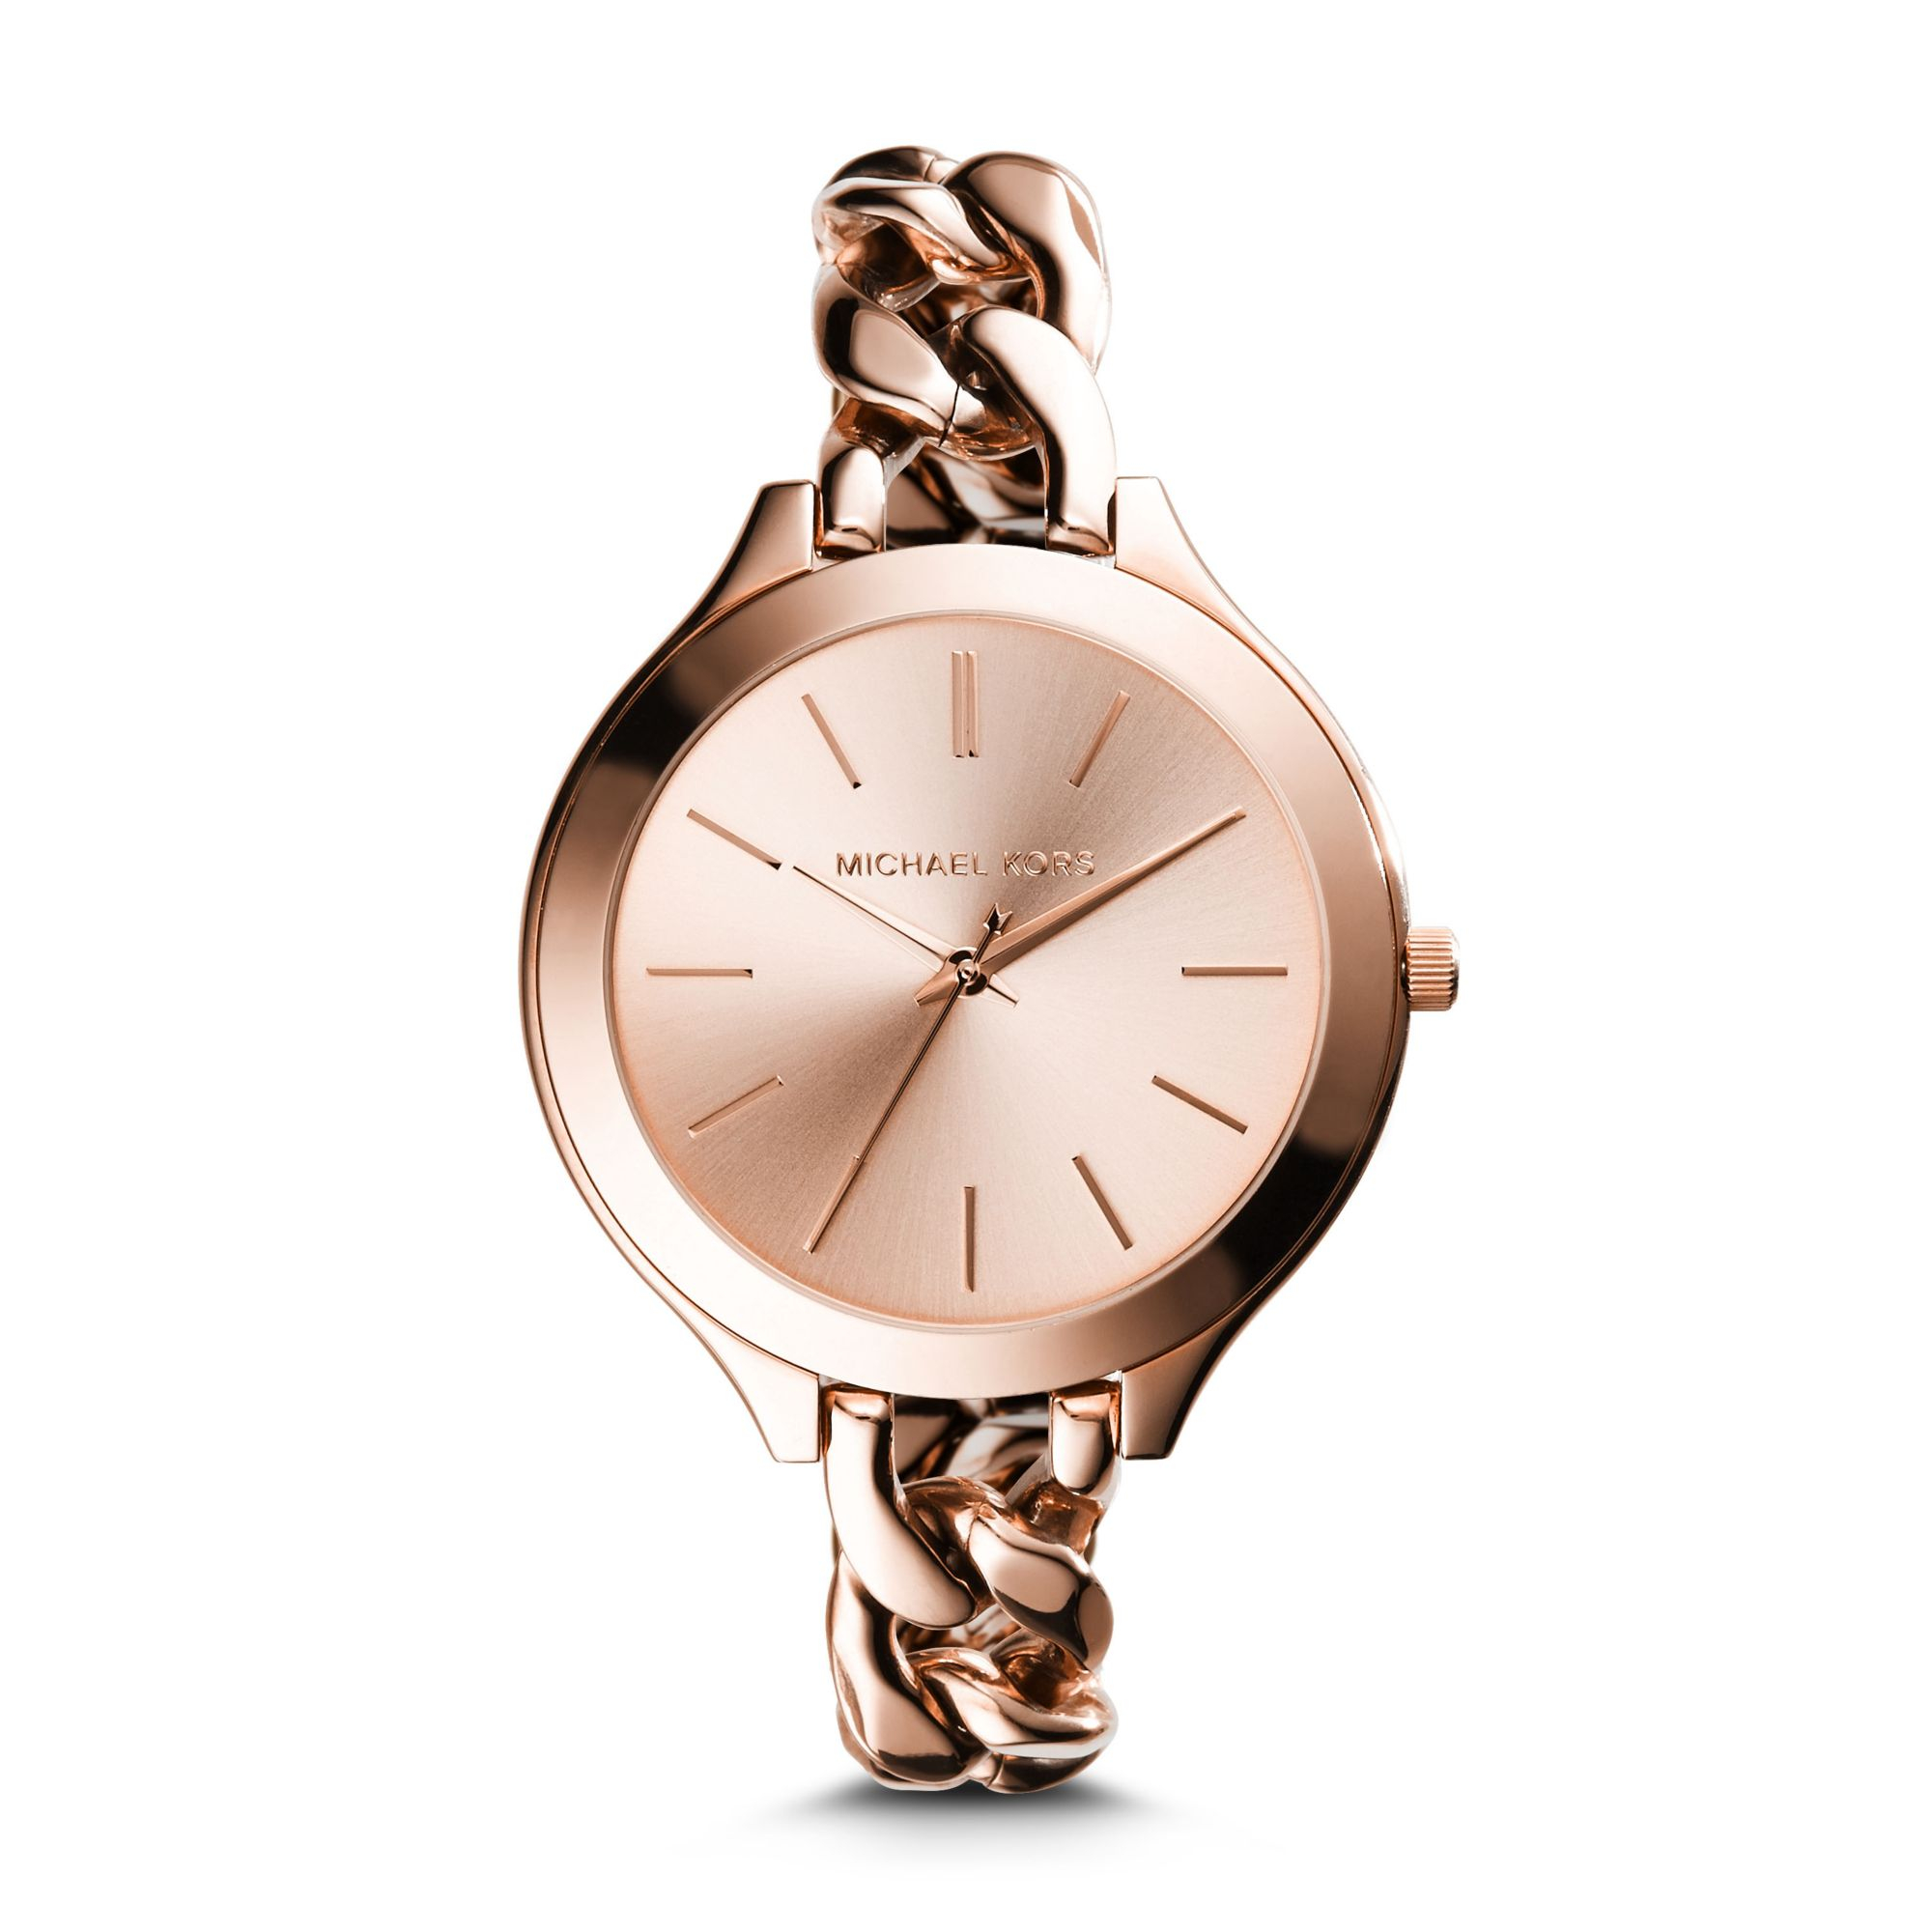 4d7f2ed6e98c Michael Kors Slim Runway Rose Gold-tone Chain-link Watch in Pink - Lyst